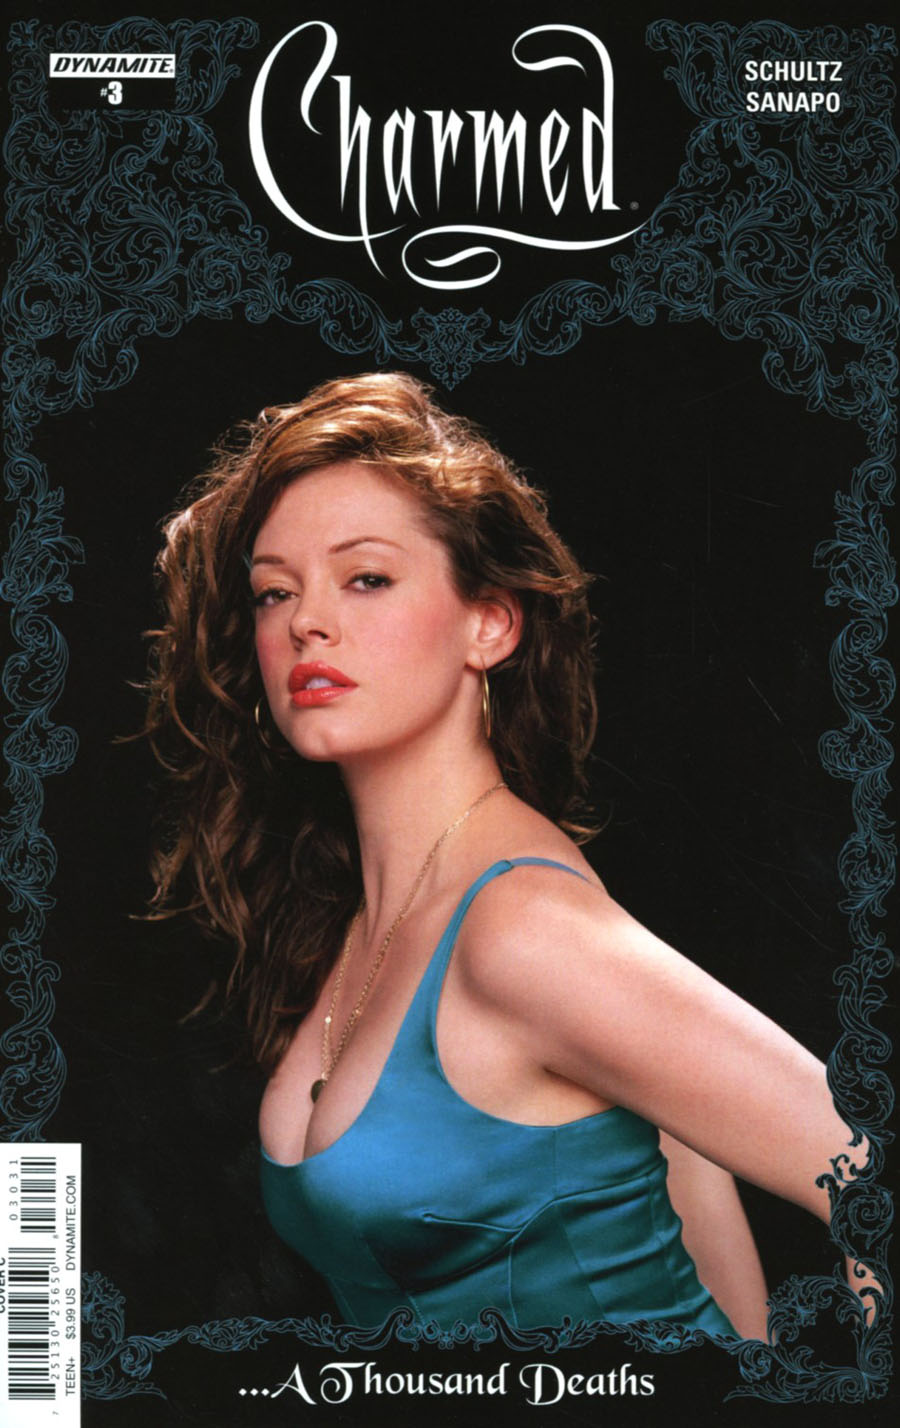 Charmed Vol 2 #3 Cover C Variant Paige Photo Cover